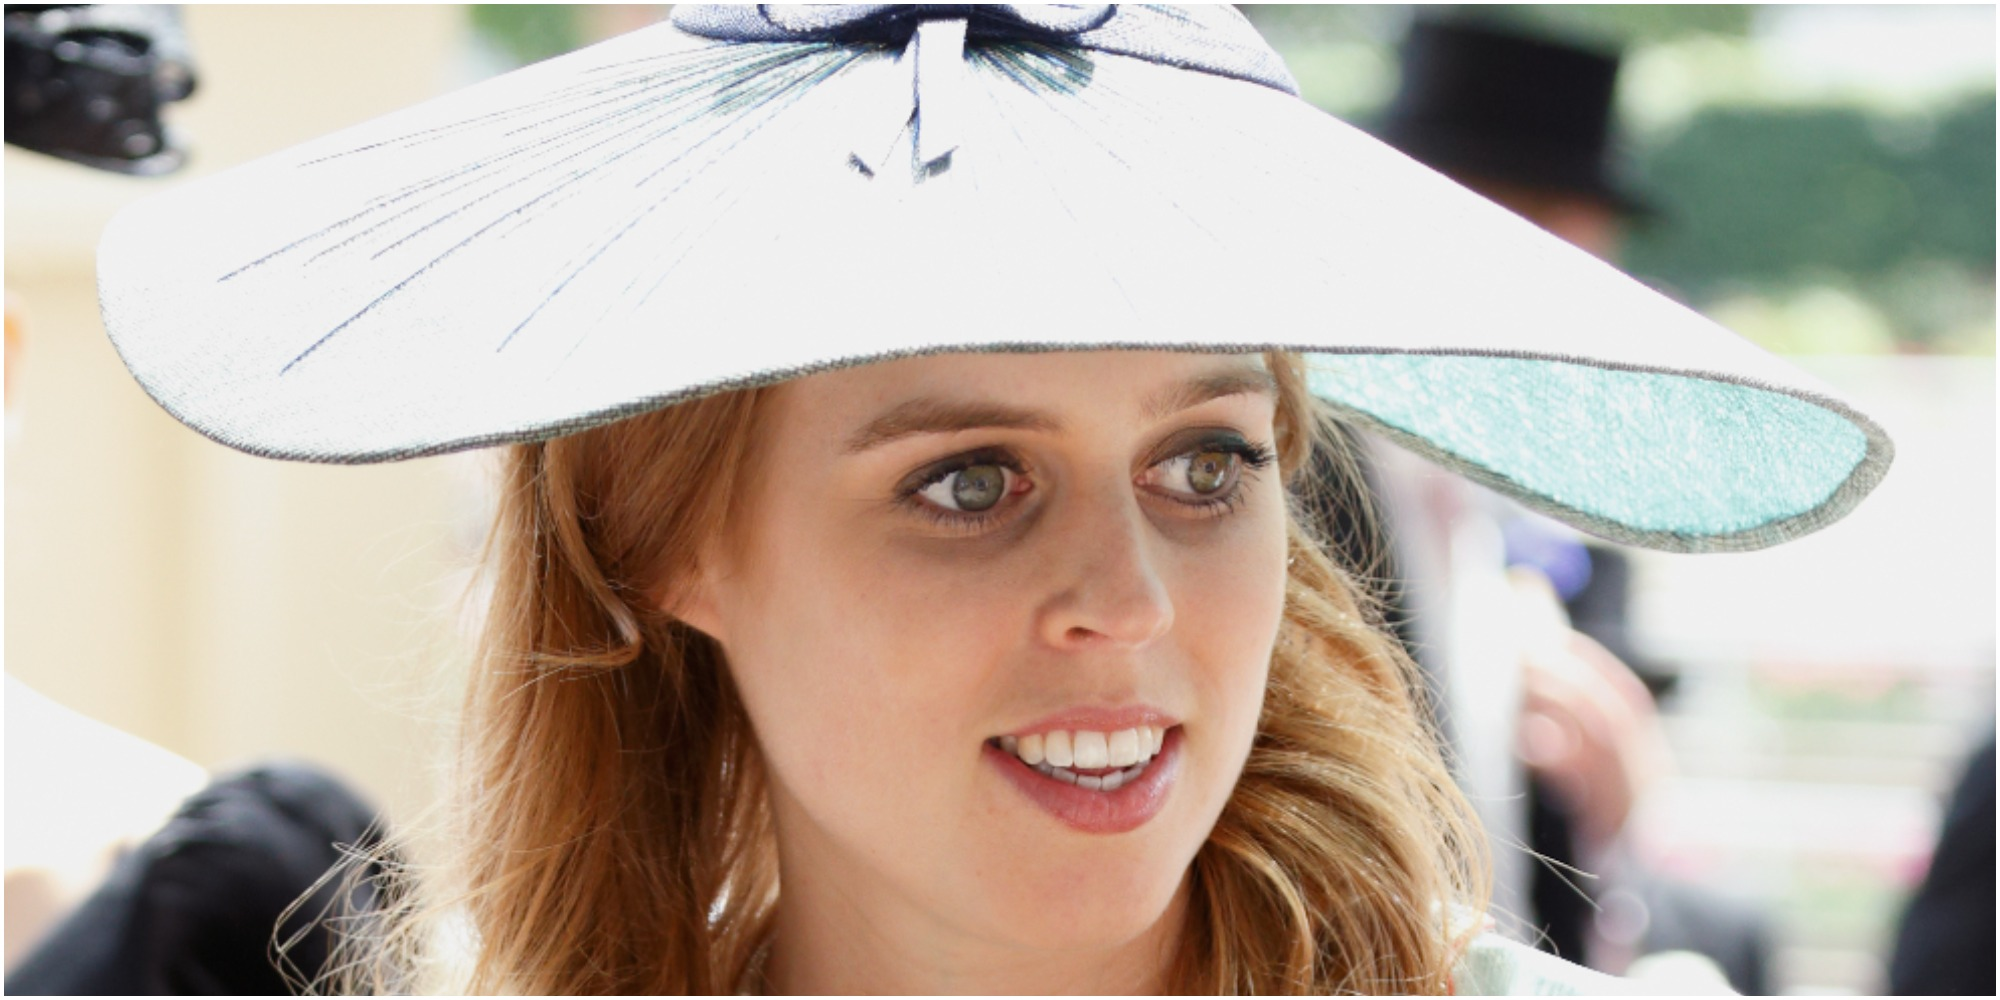 Princess Beatrice has given birth to her first daughter and Queen Elizabeth's 12th great-grandchild.